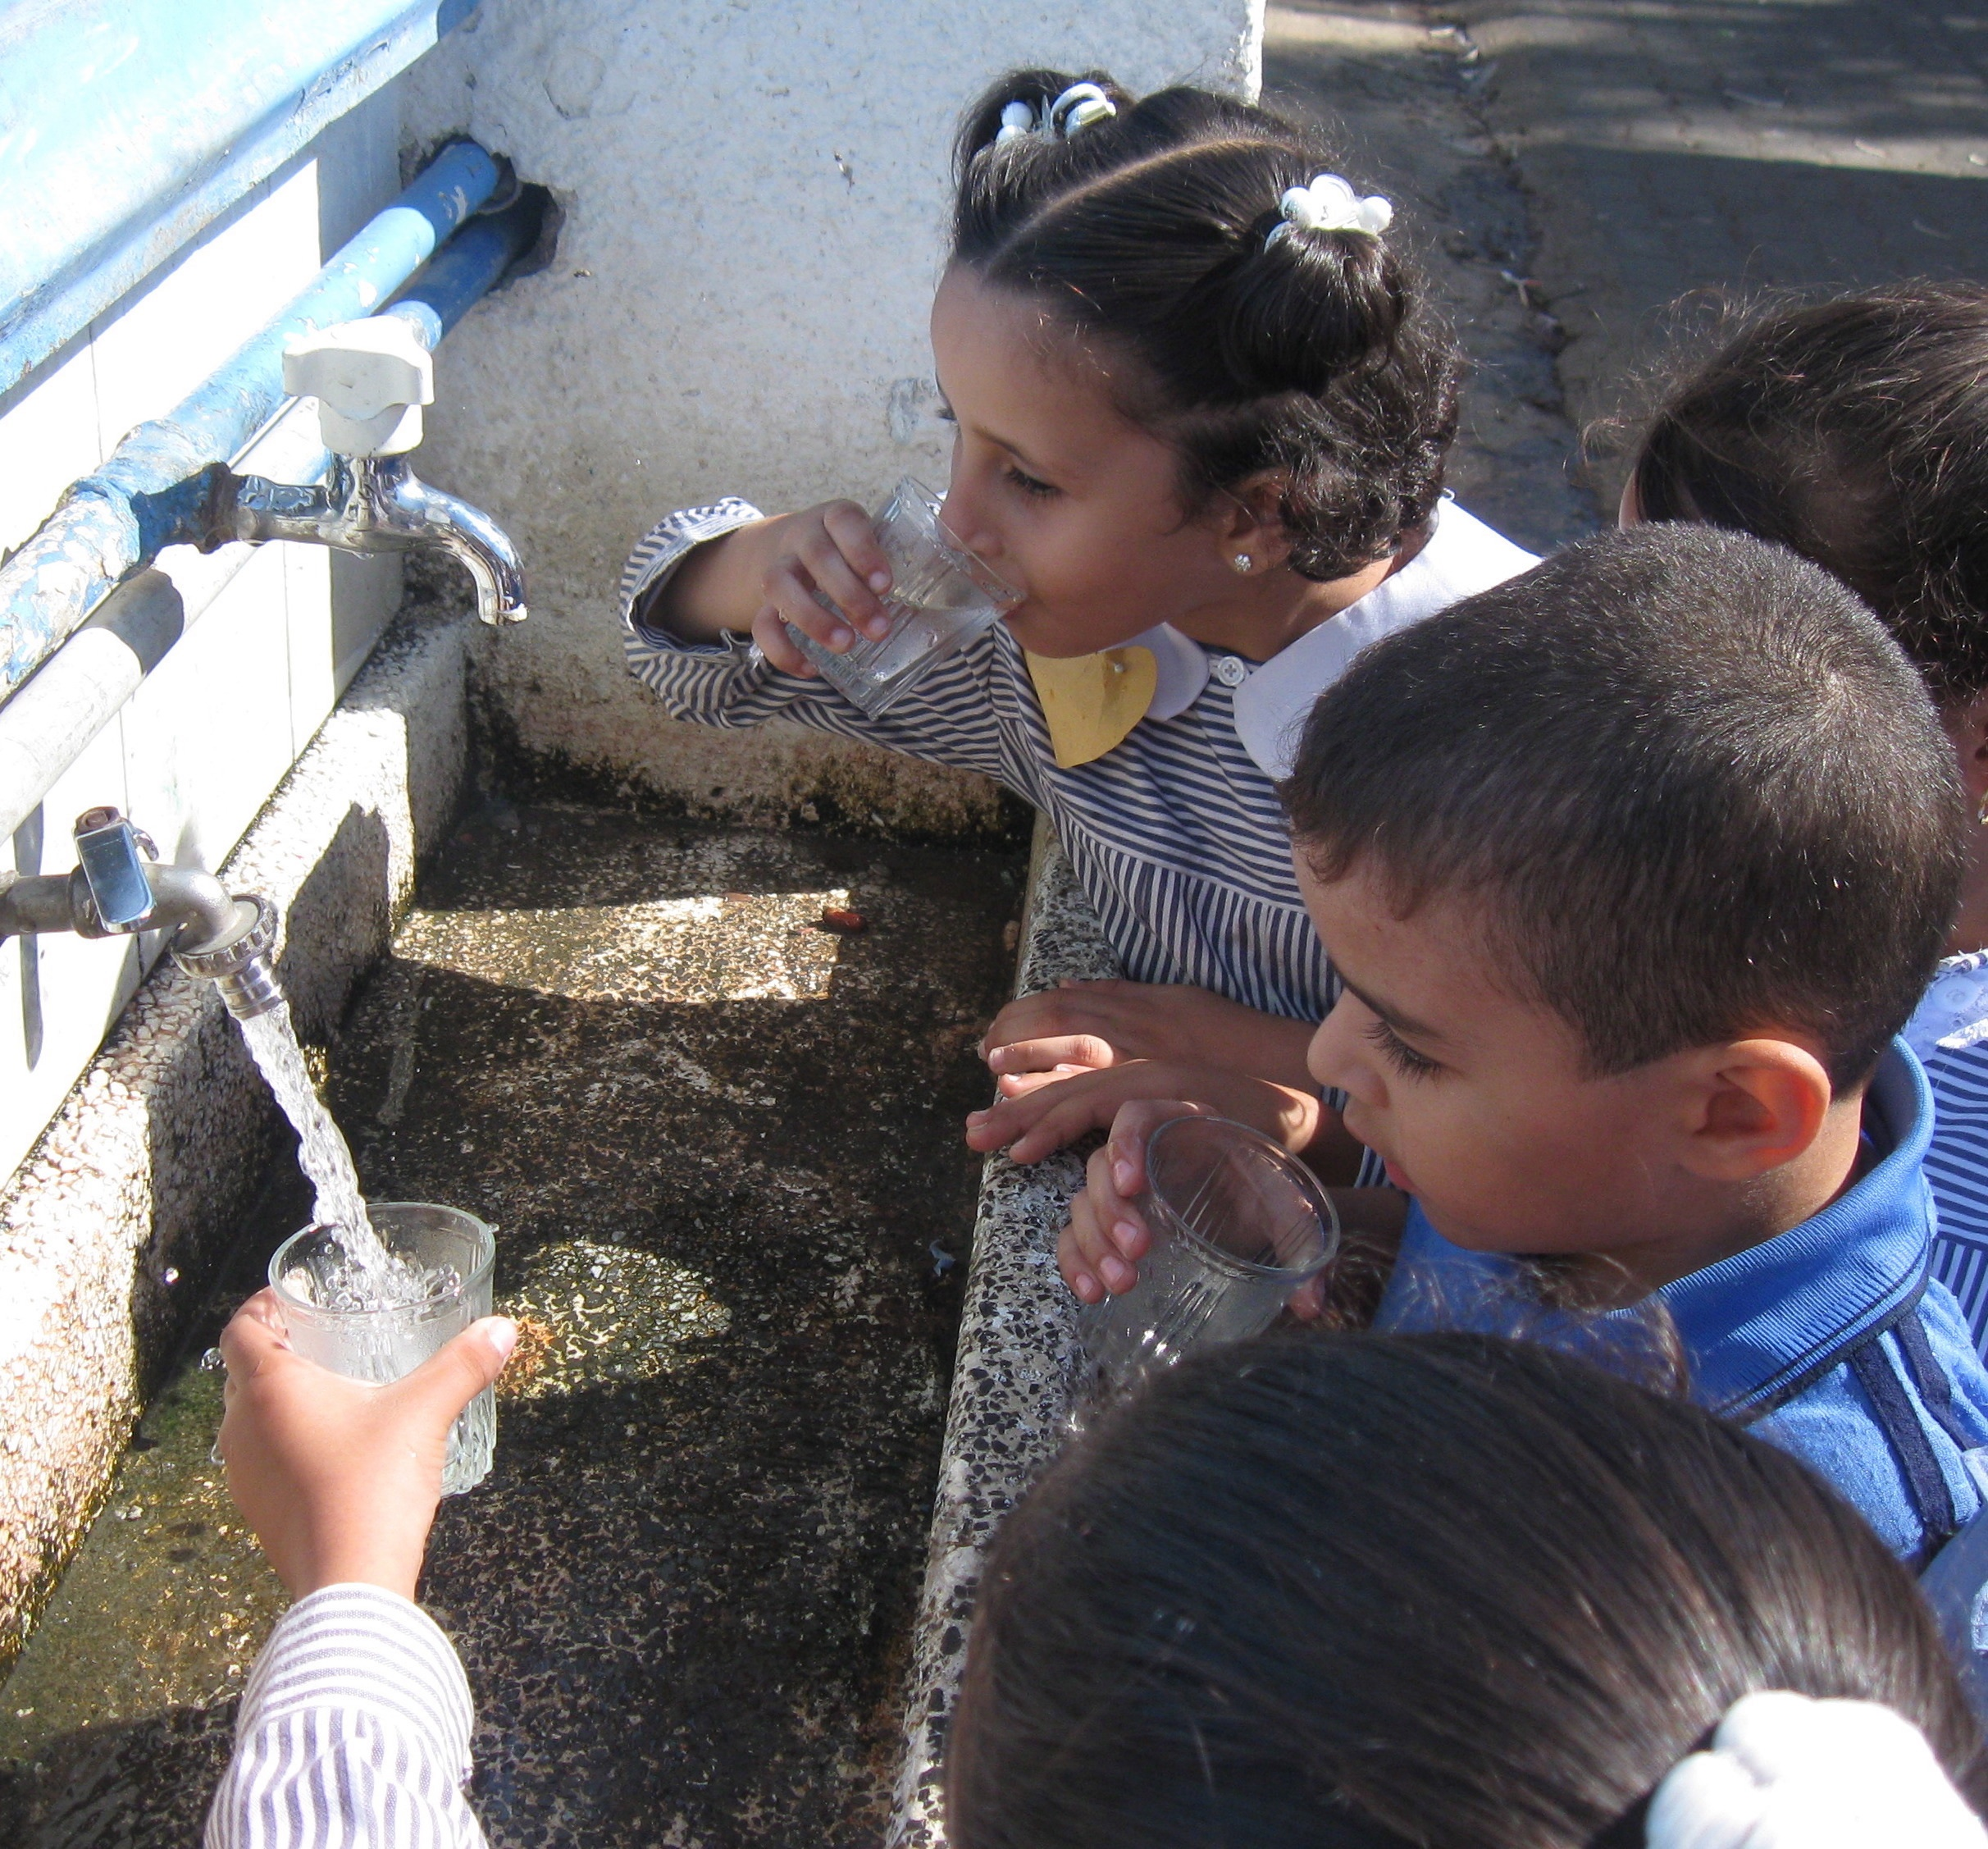 Bringing Clean Water to the Children of Palestine